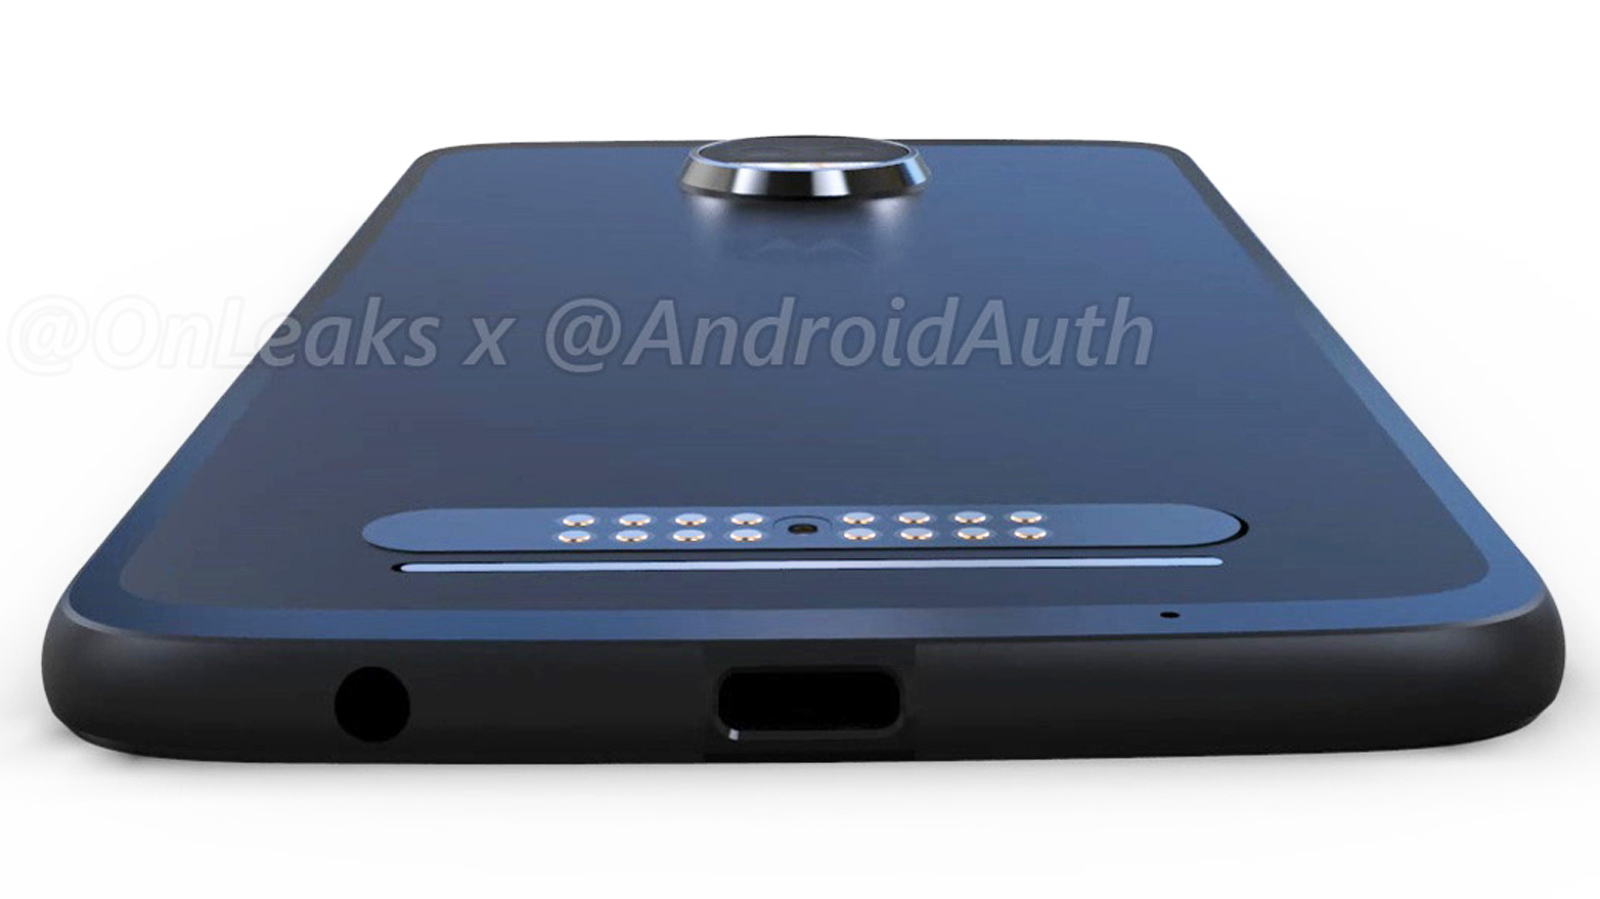 Leaked image of the design featuring the revival of the headphone jack on the Moto Z2 Force